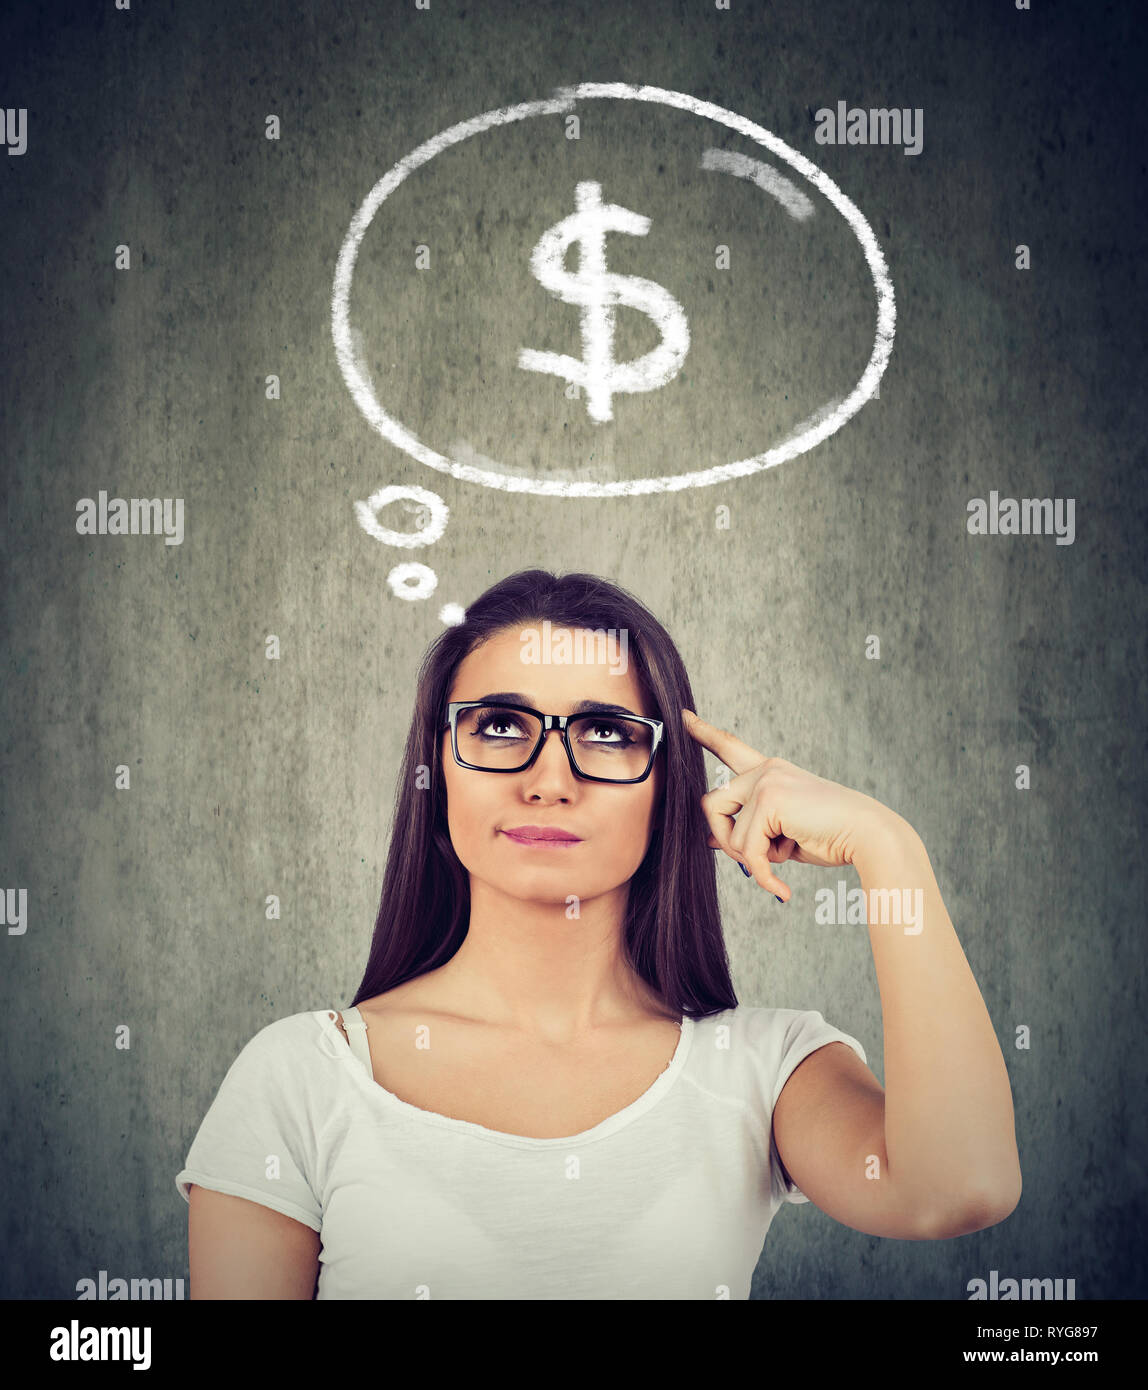 Woman dreaming of financial success thinking how to start a profitable business - Stock Image